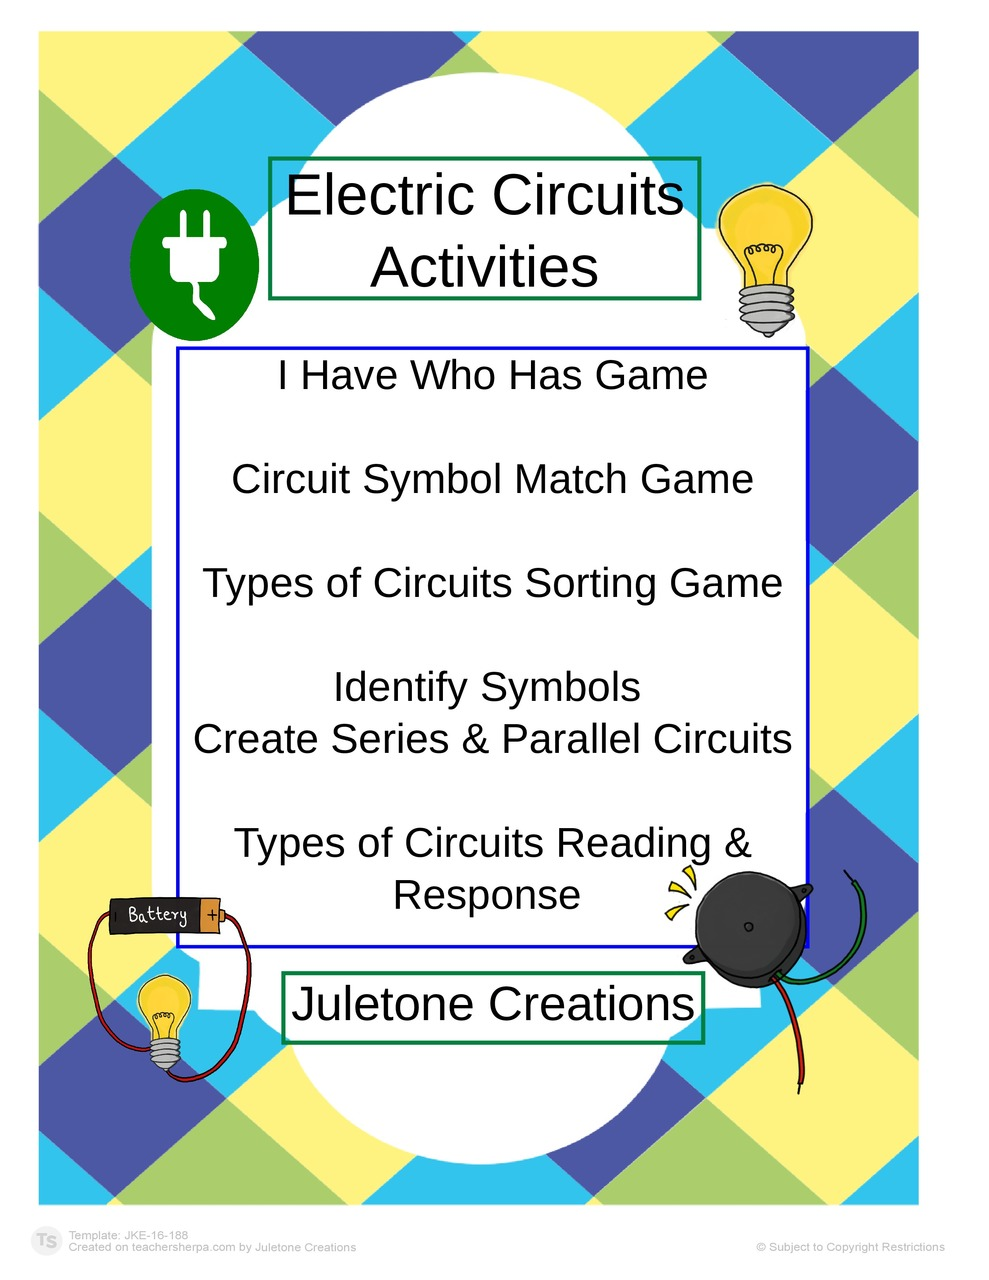 Electric Circuit Activities Amped Up Learning Electric Circuit Activities Classroom Lessons [ 1280 x 989 Pixel ]